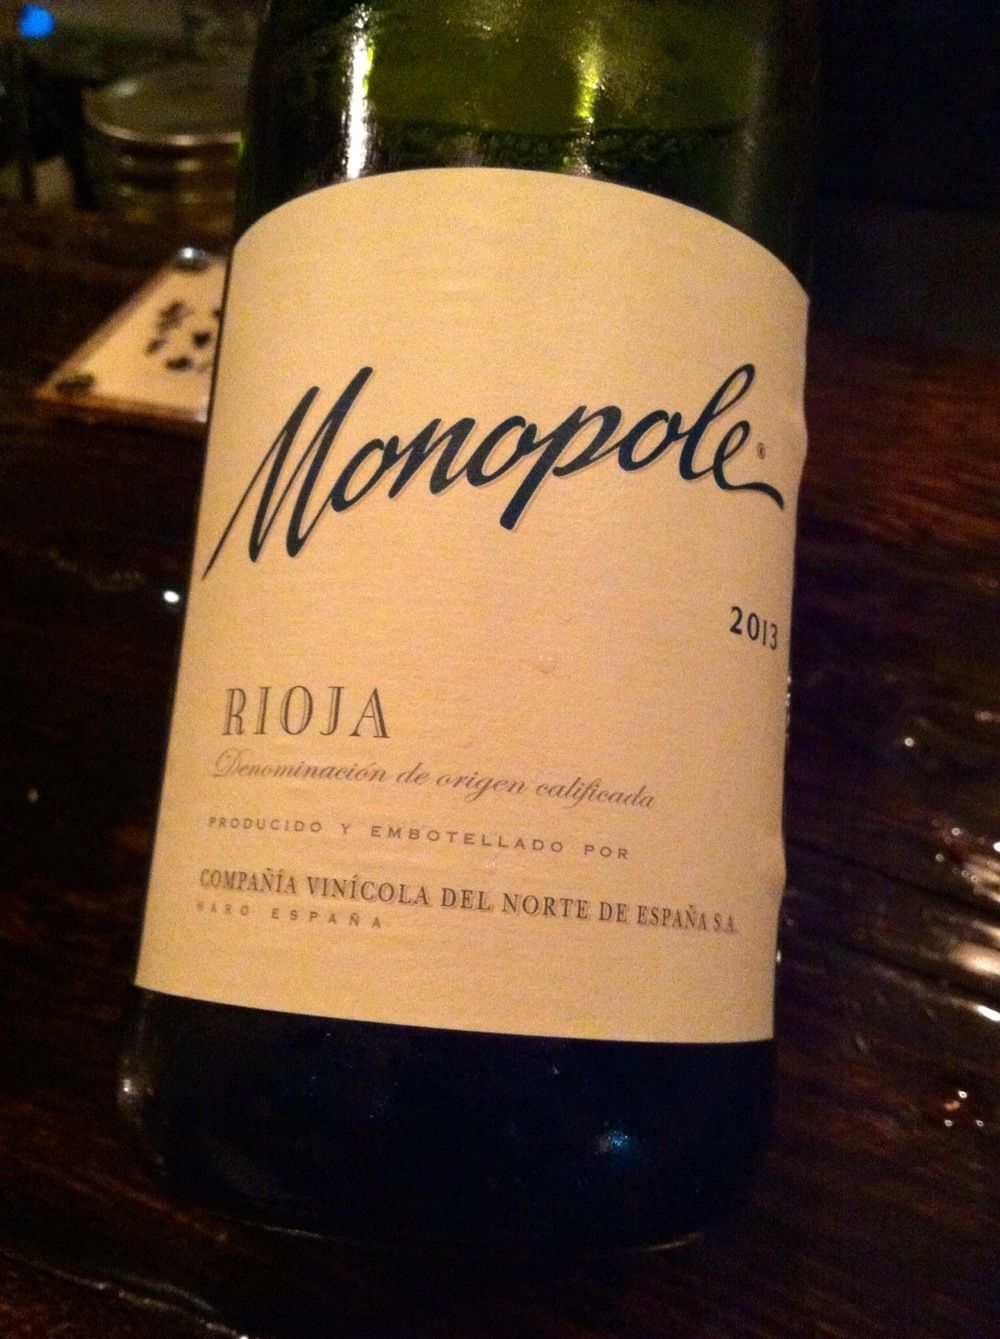 Monopole Rioja Blanca, Spain, 2013. Photo by Shana Sokol, Shana Speaks Wine.